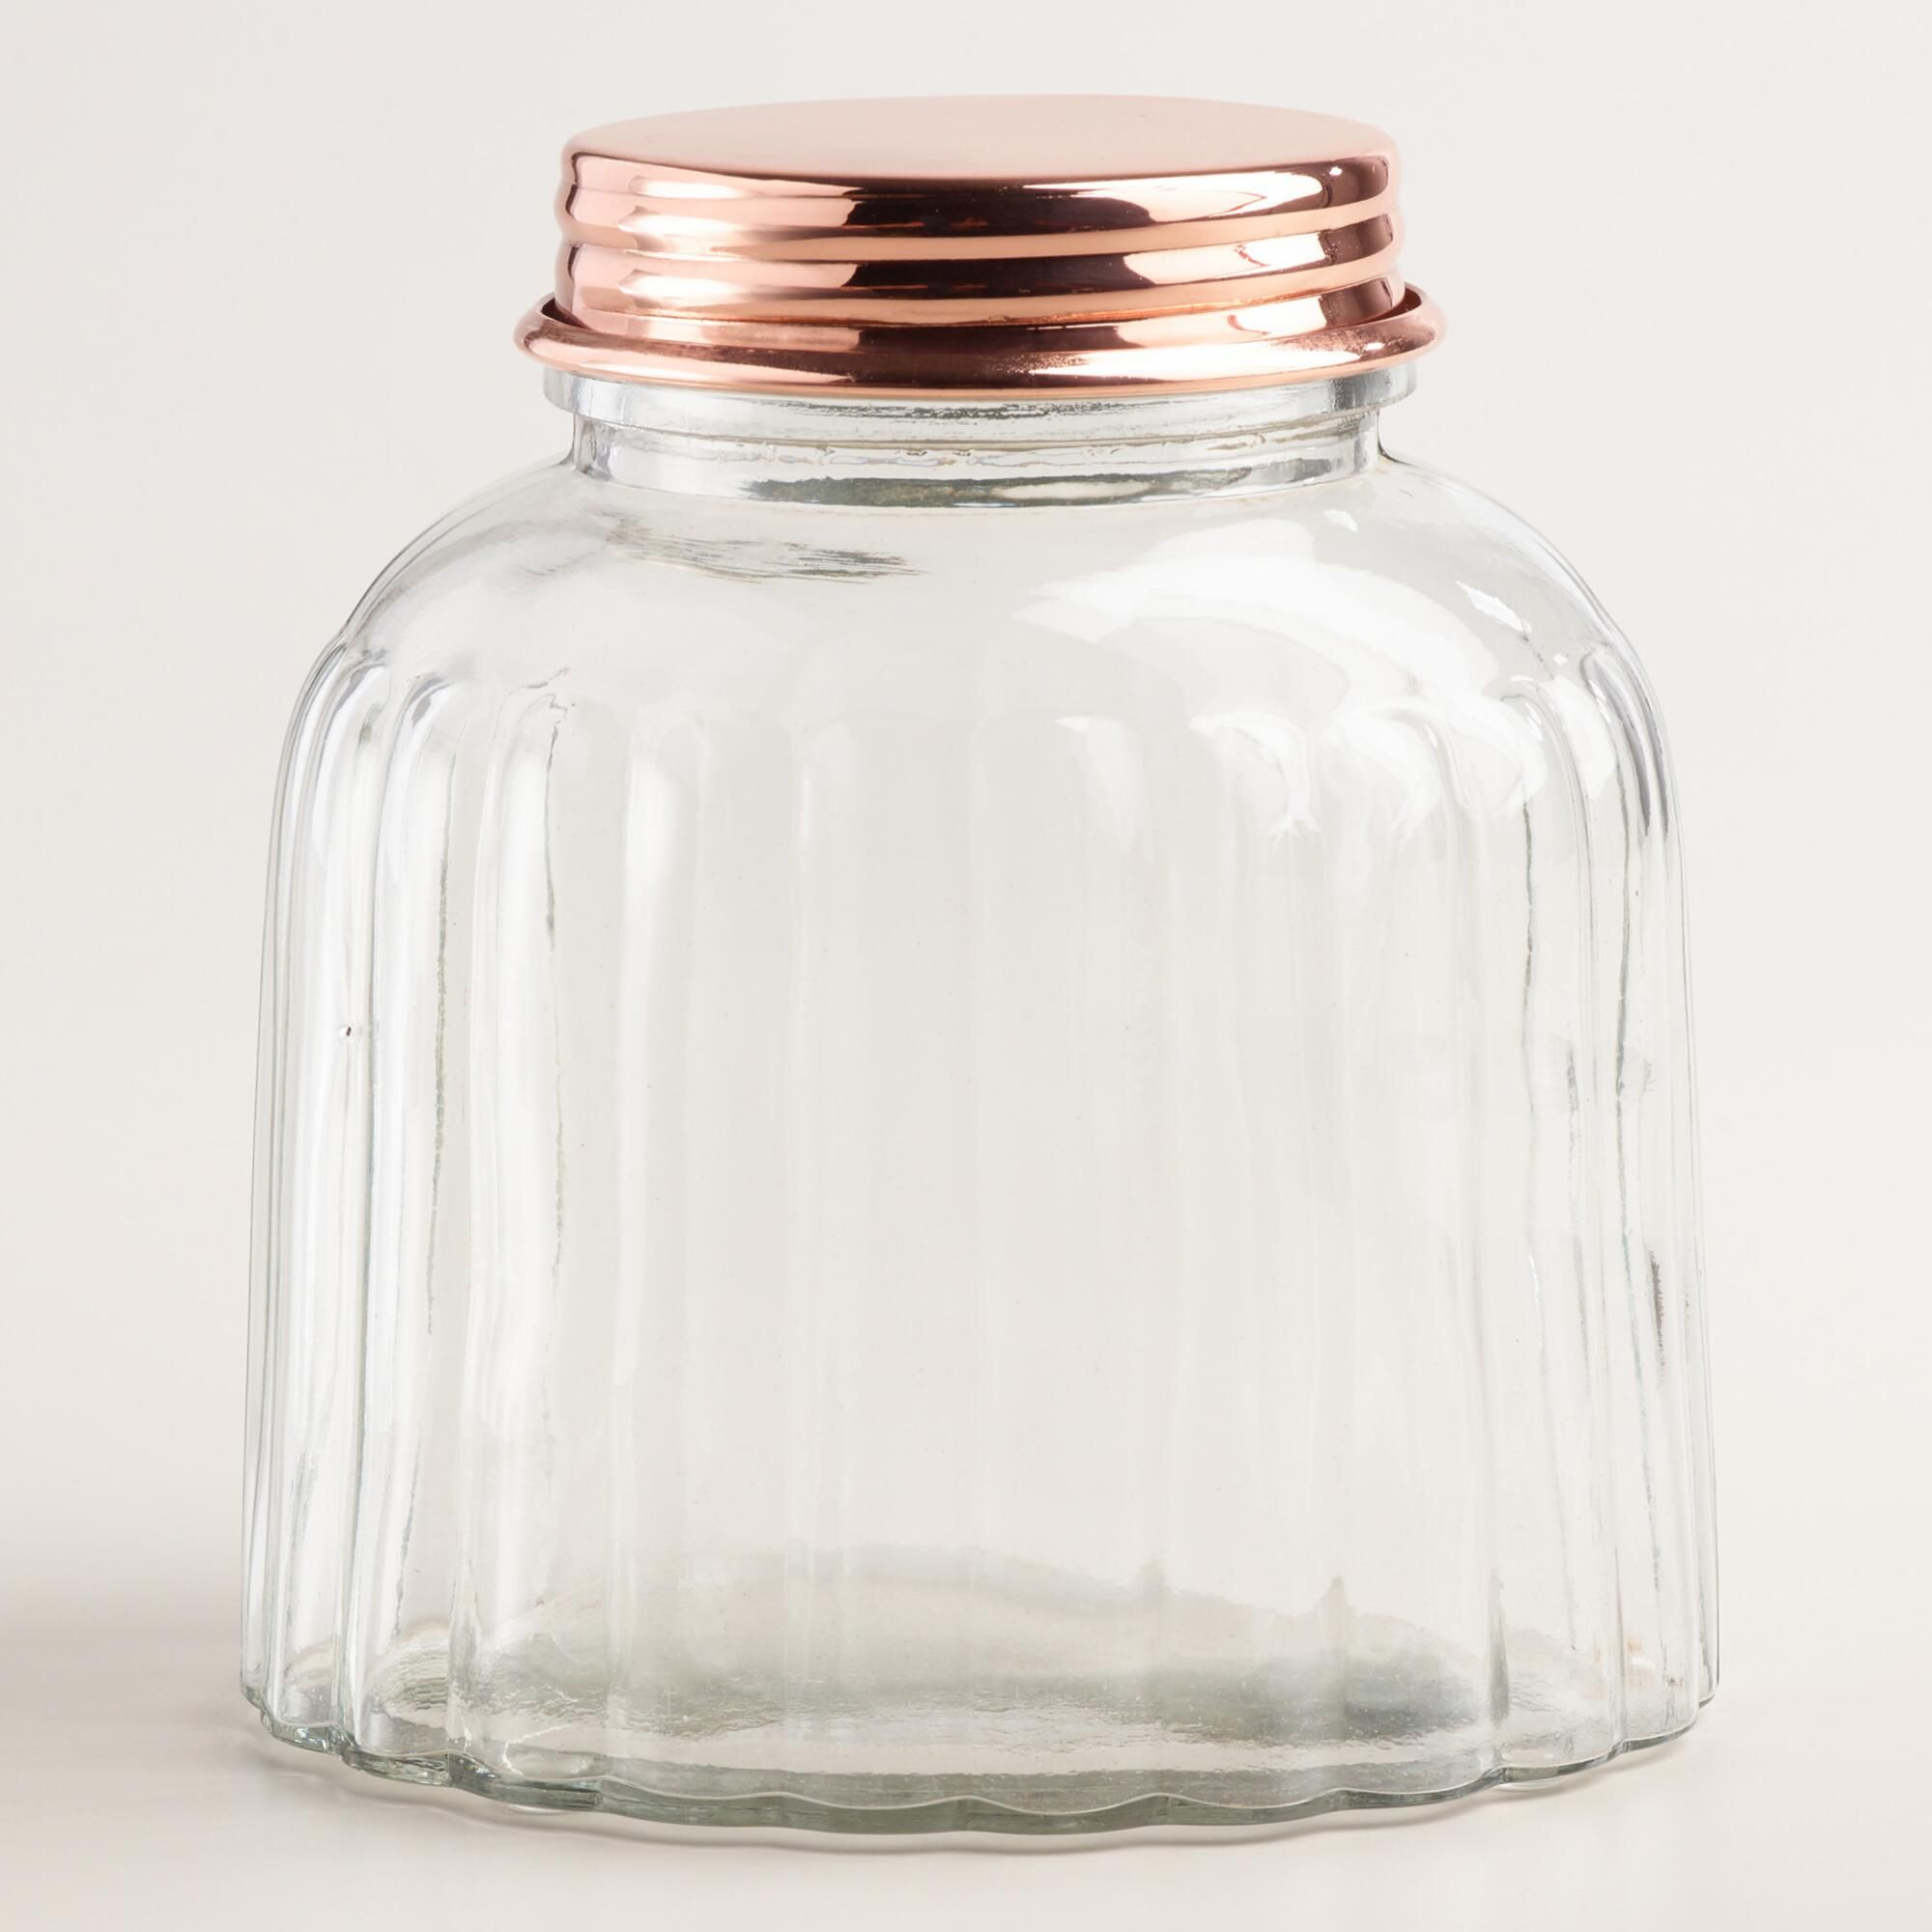 decorative glass jars for kitchen island lanterns with a vintage inspired ribbed texture and warm copper